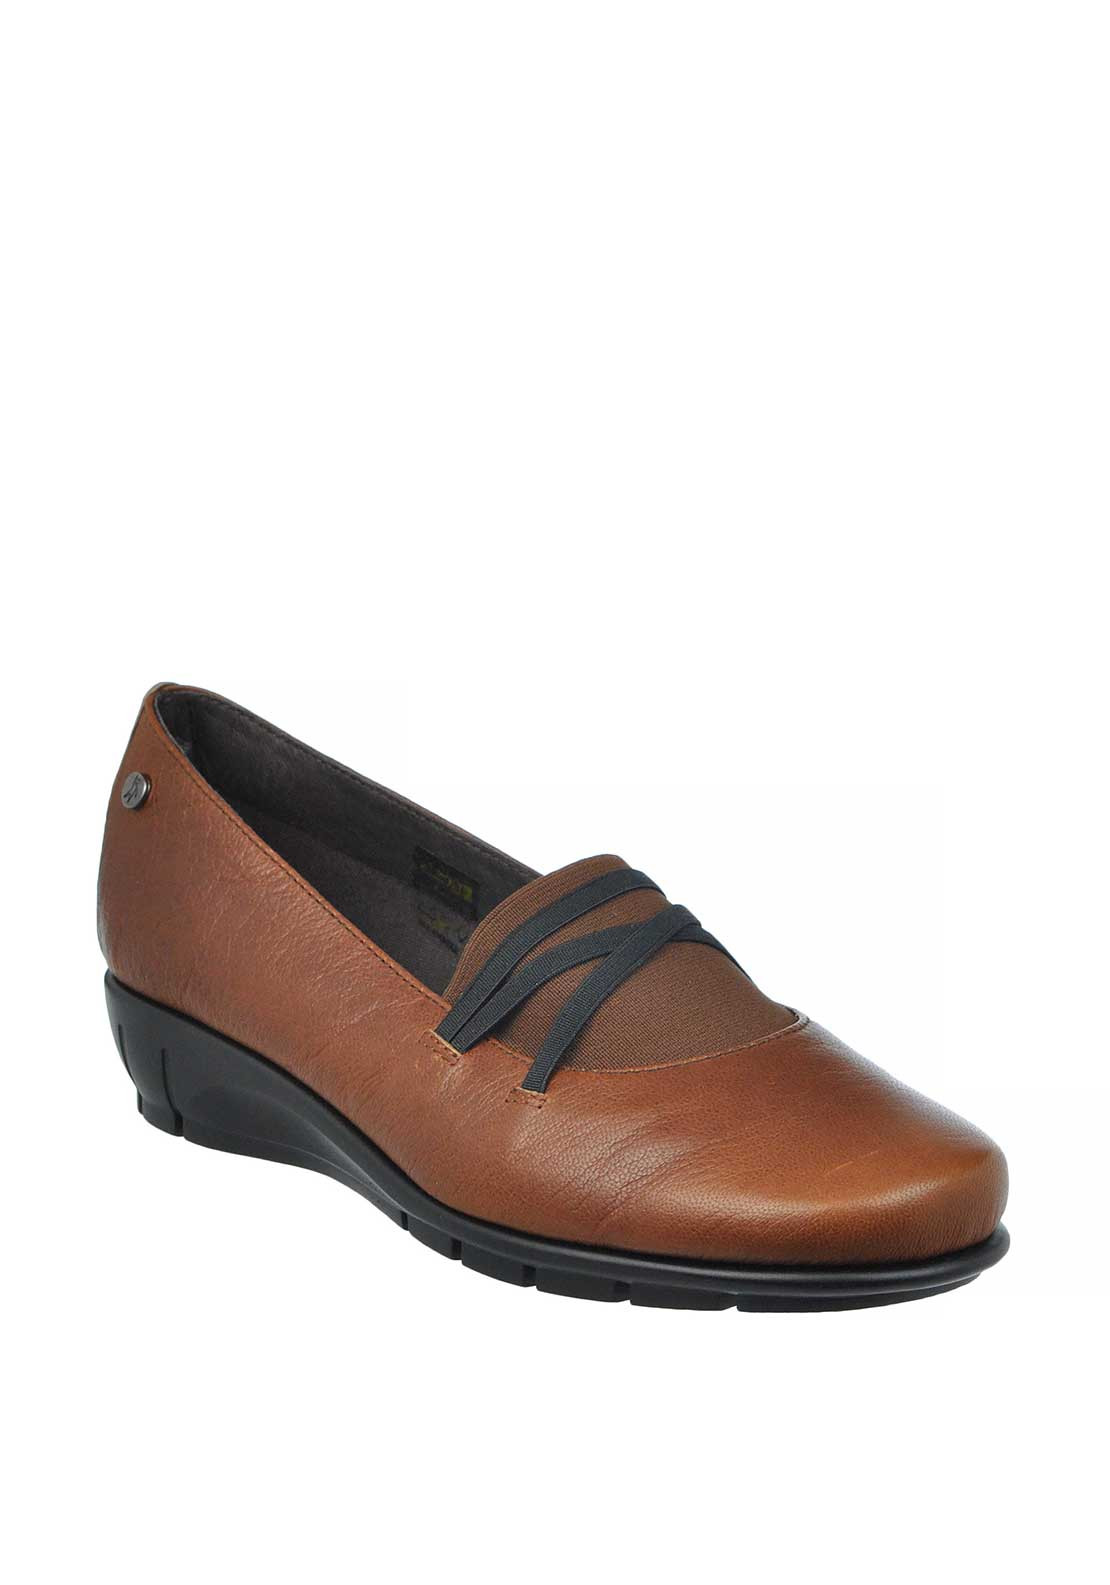 Flex & Go Paris Leather Slip on Shoes, Cognac